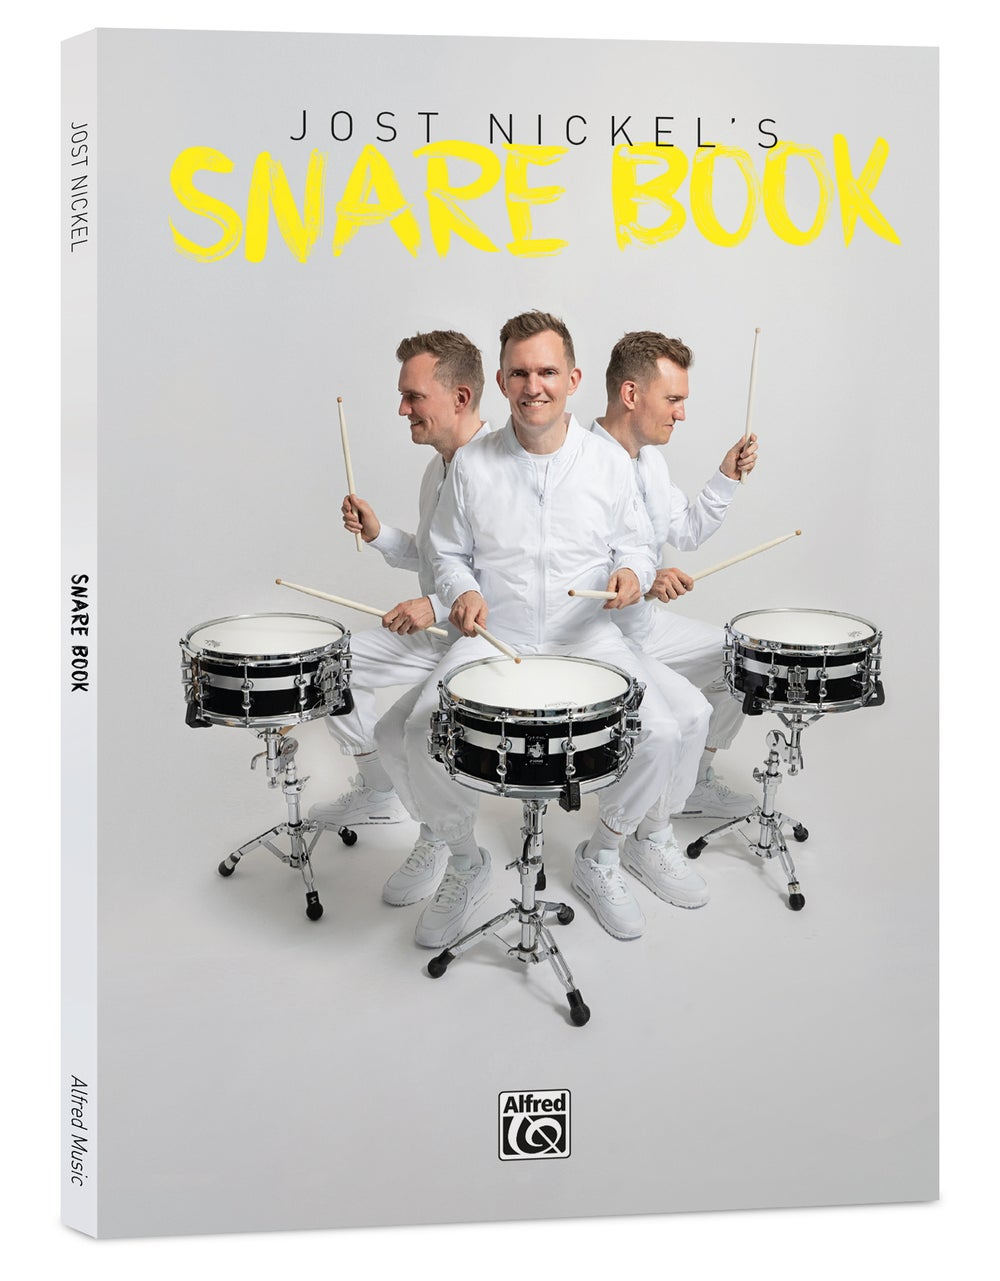 Image of Jost Nickel's SNARE BOOK - ENGLISH (Signed Copy)